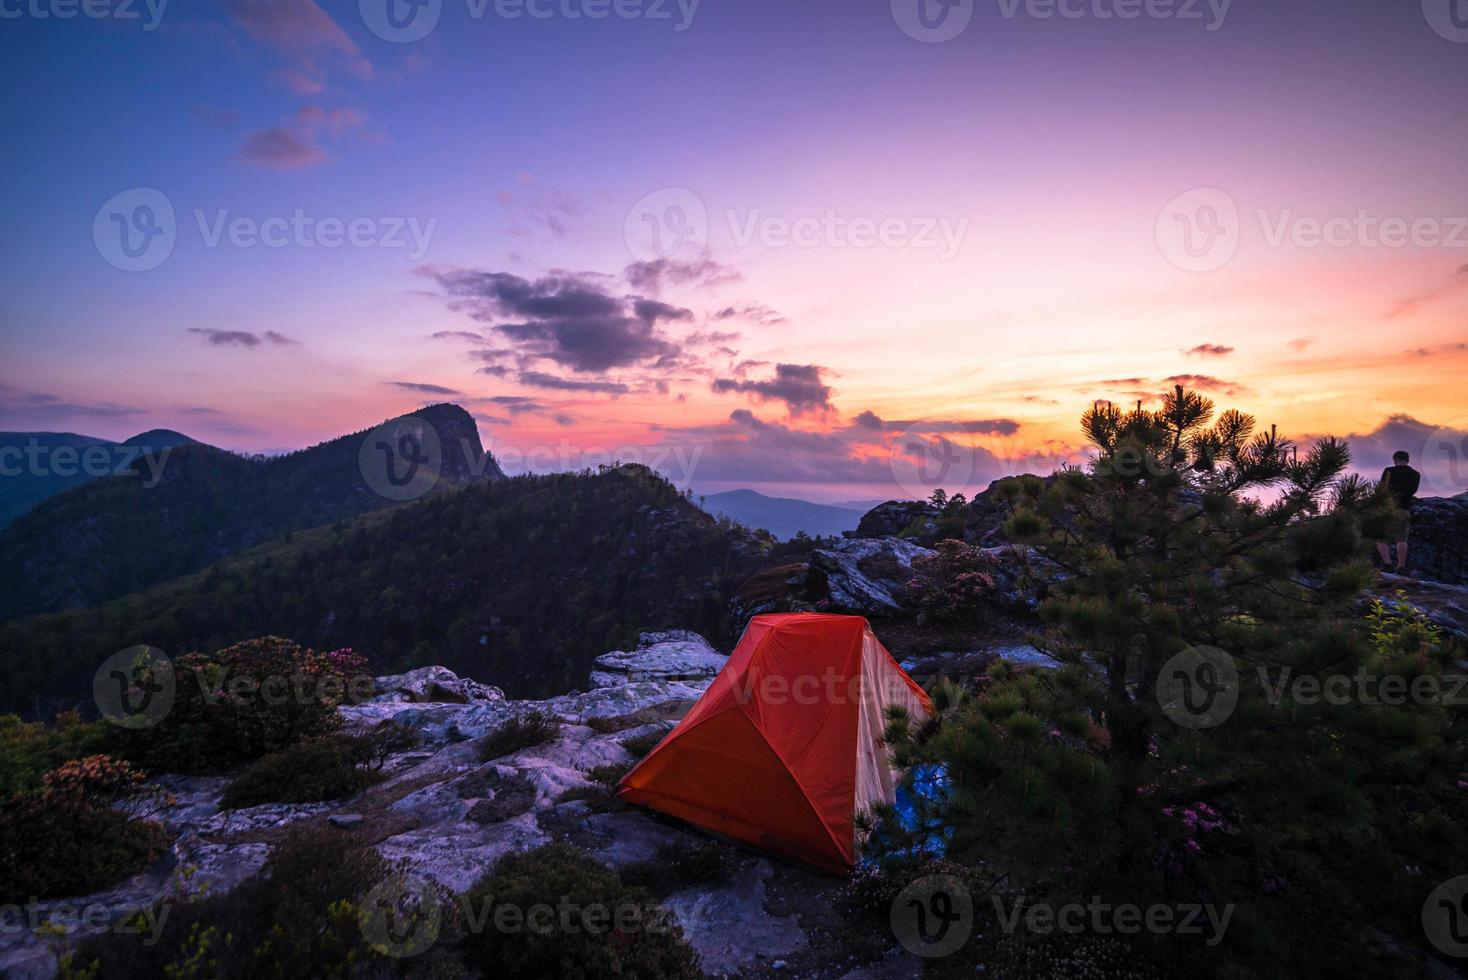 Tent Camping In The Linville Gorge Wilderness Area photo